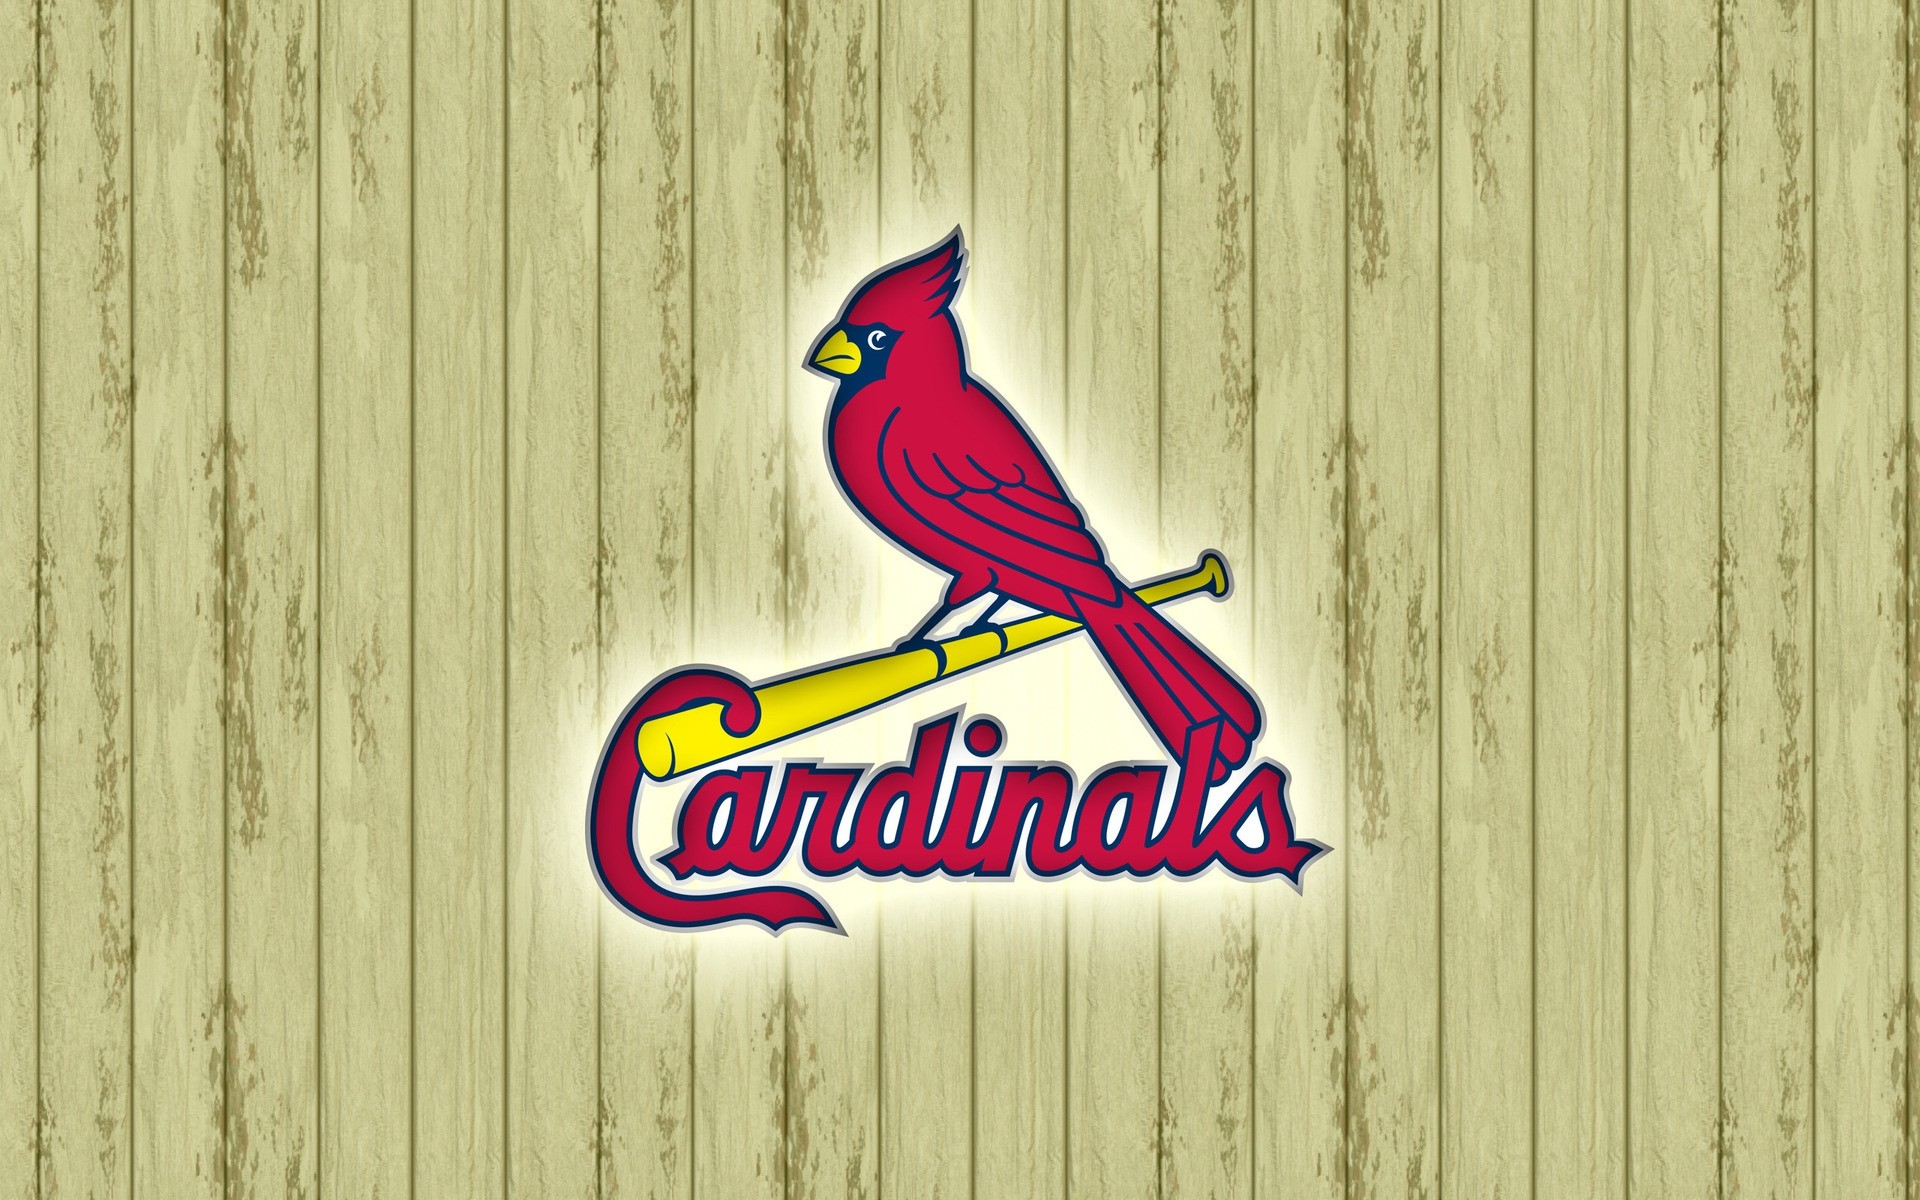 Last year's Cardinals team was impressive, but the 2014 St Louis Cardinals  team could be even better, as their young players start to come of age.